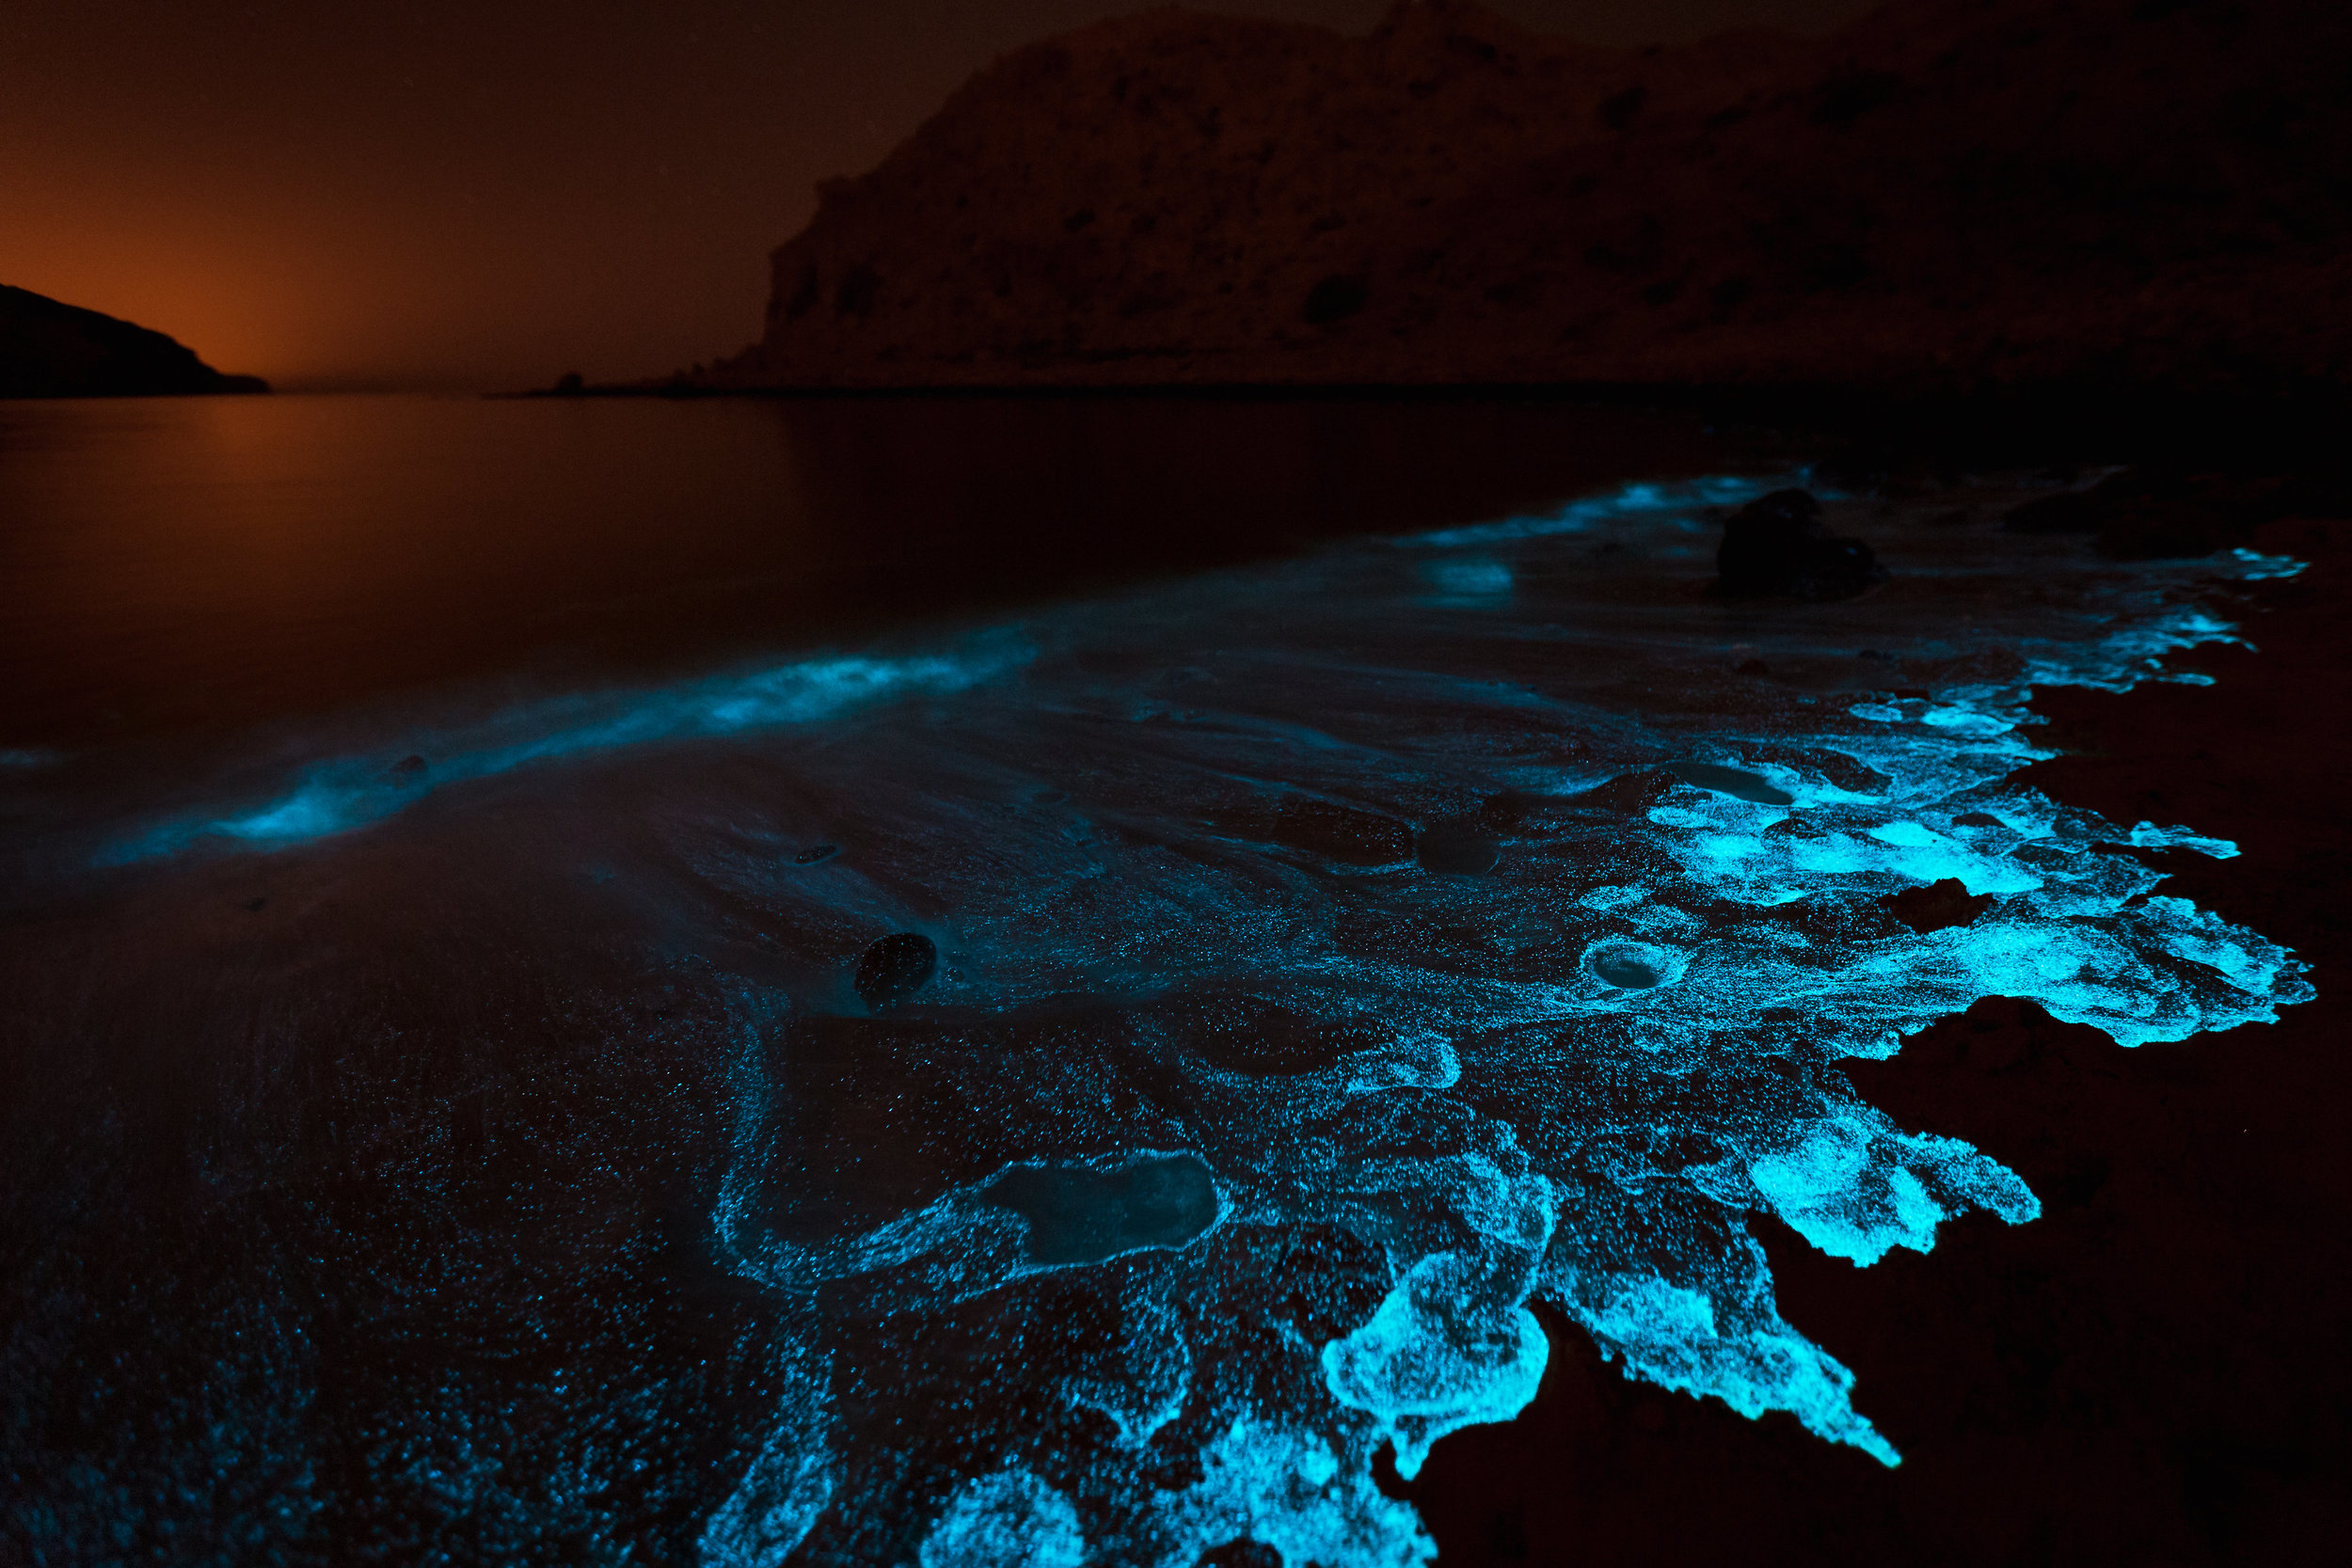 Bioluminescent algae glows after fresh spring rains, off the coast of Sifat Al Sheikh.